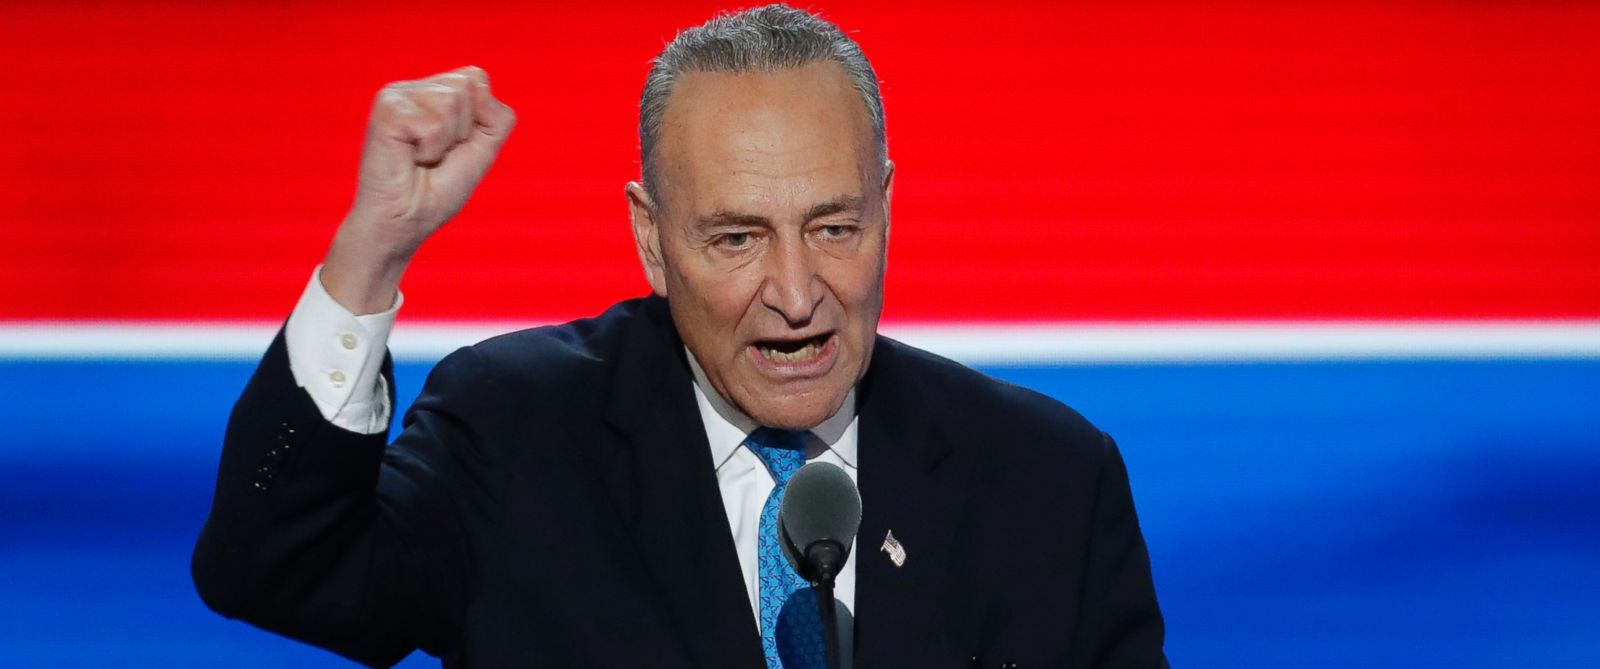 PHOTO: Sen. Chuck Schumer, D-NY., speaks during the second day of the Democratic National Convention in Philadelphia, July 26, 2016.